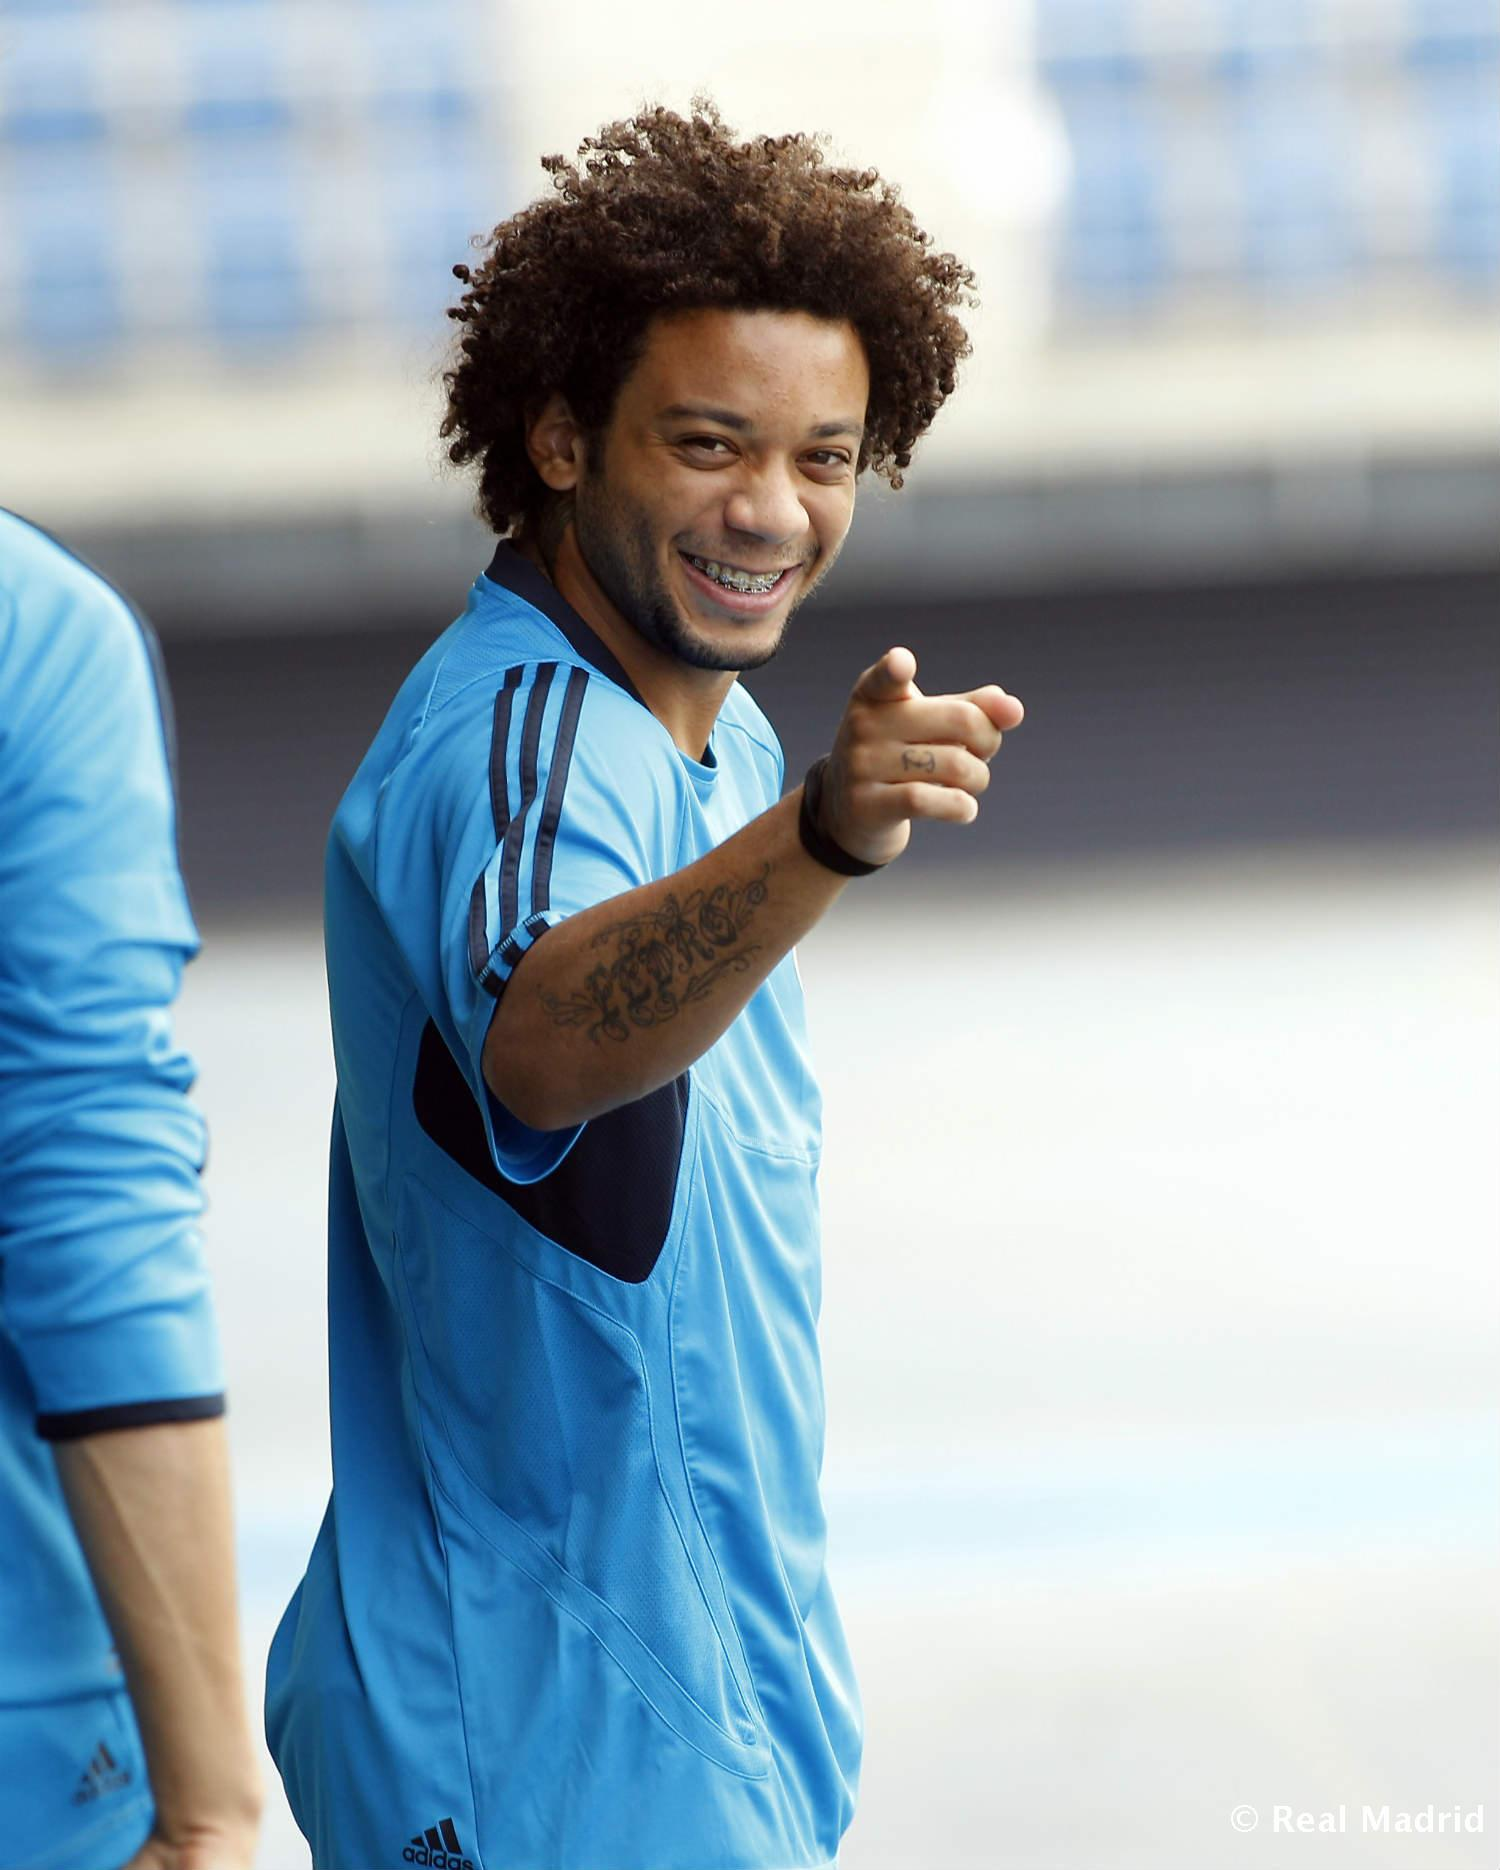 Real Madrid - Marcelo - 27-01-2014